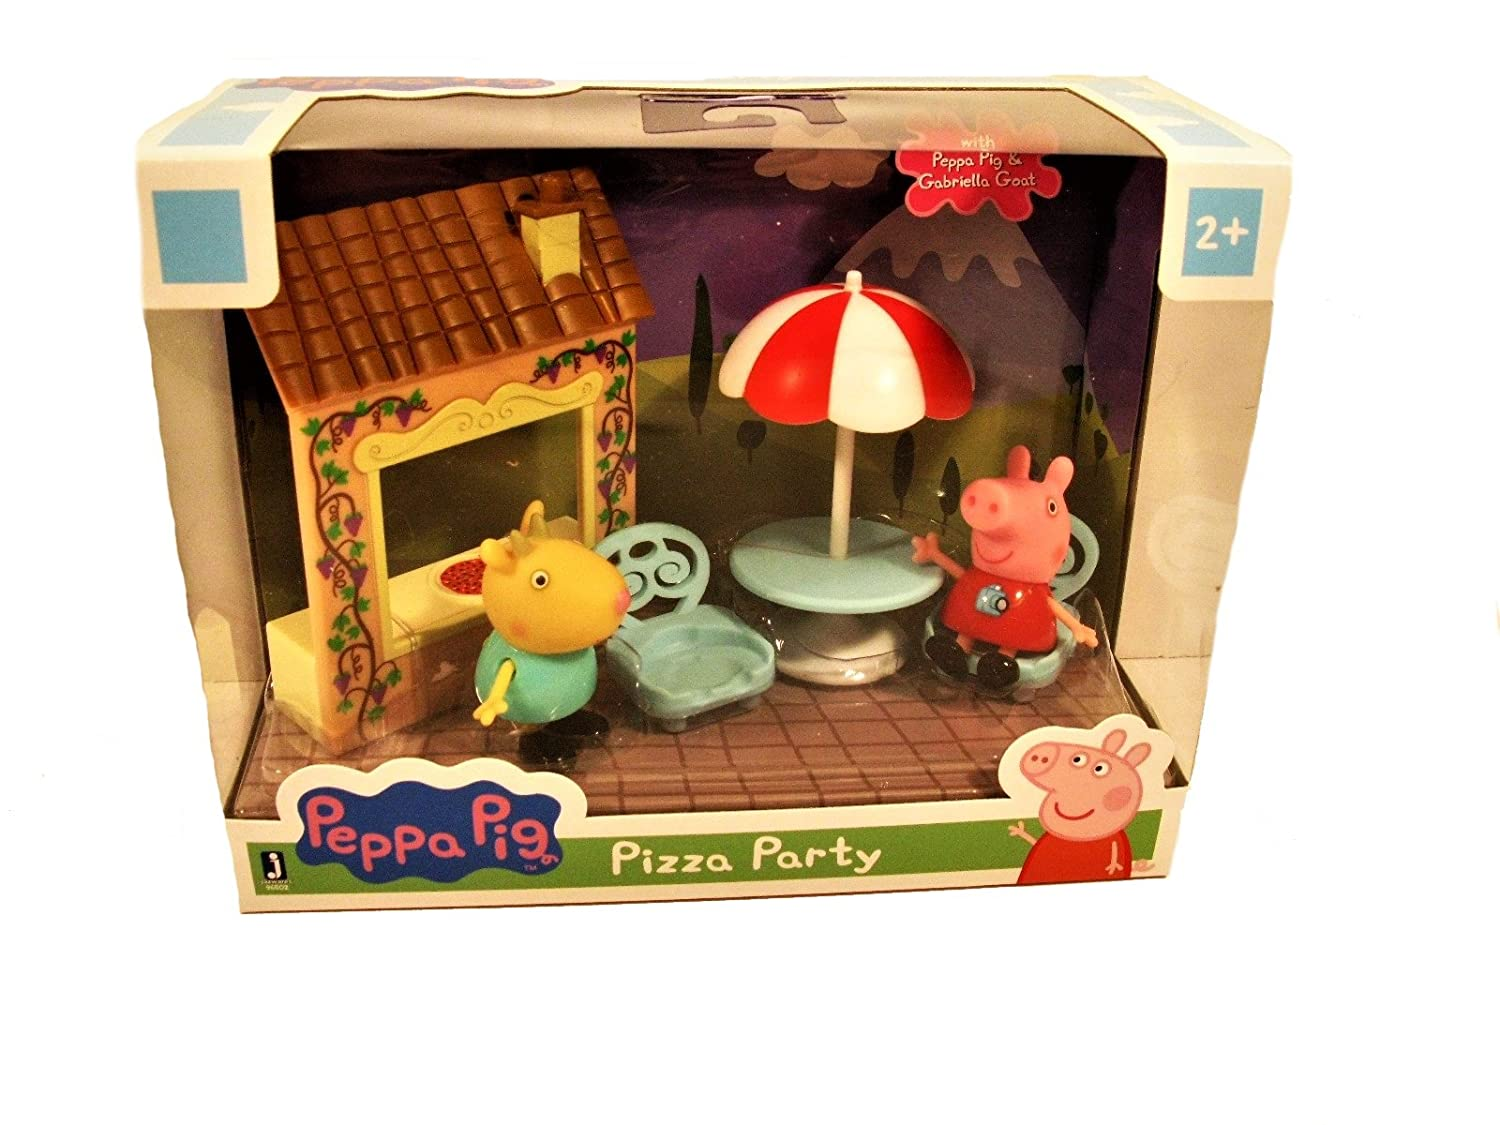 Amazon.com: Peppa Pig Pizza Party Playtime Set Jazwares: Toys & Games